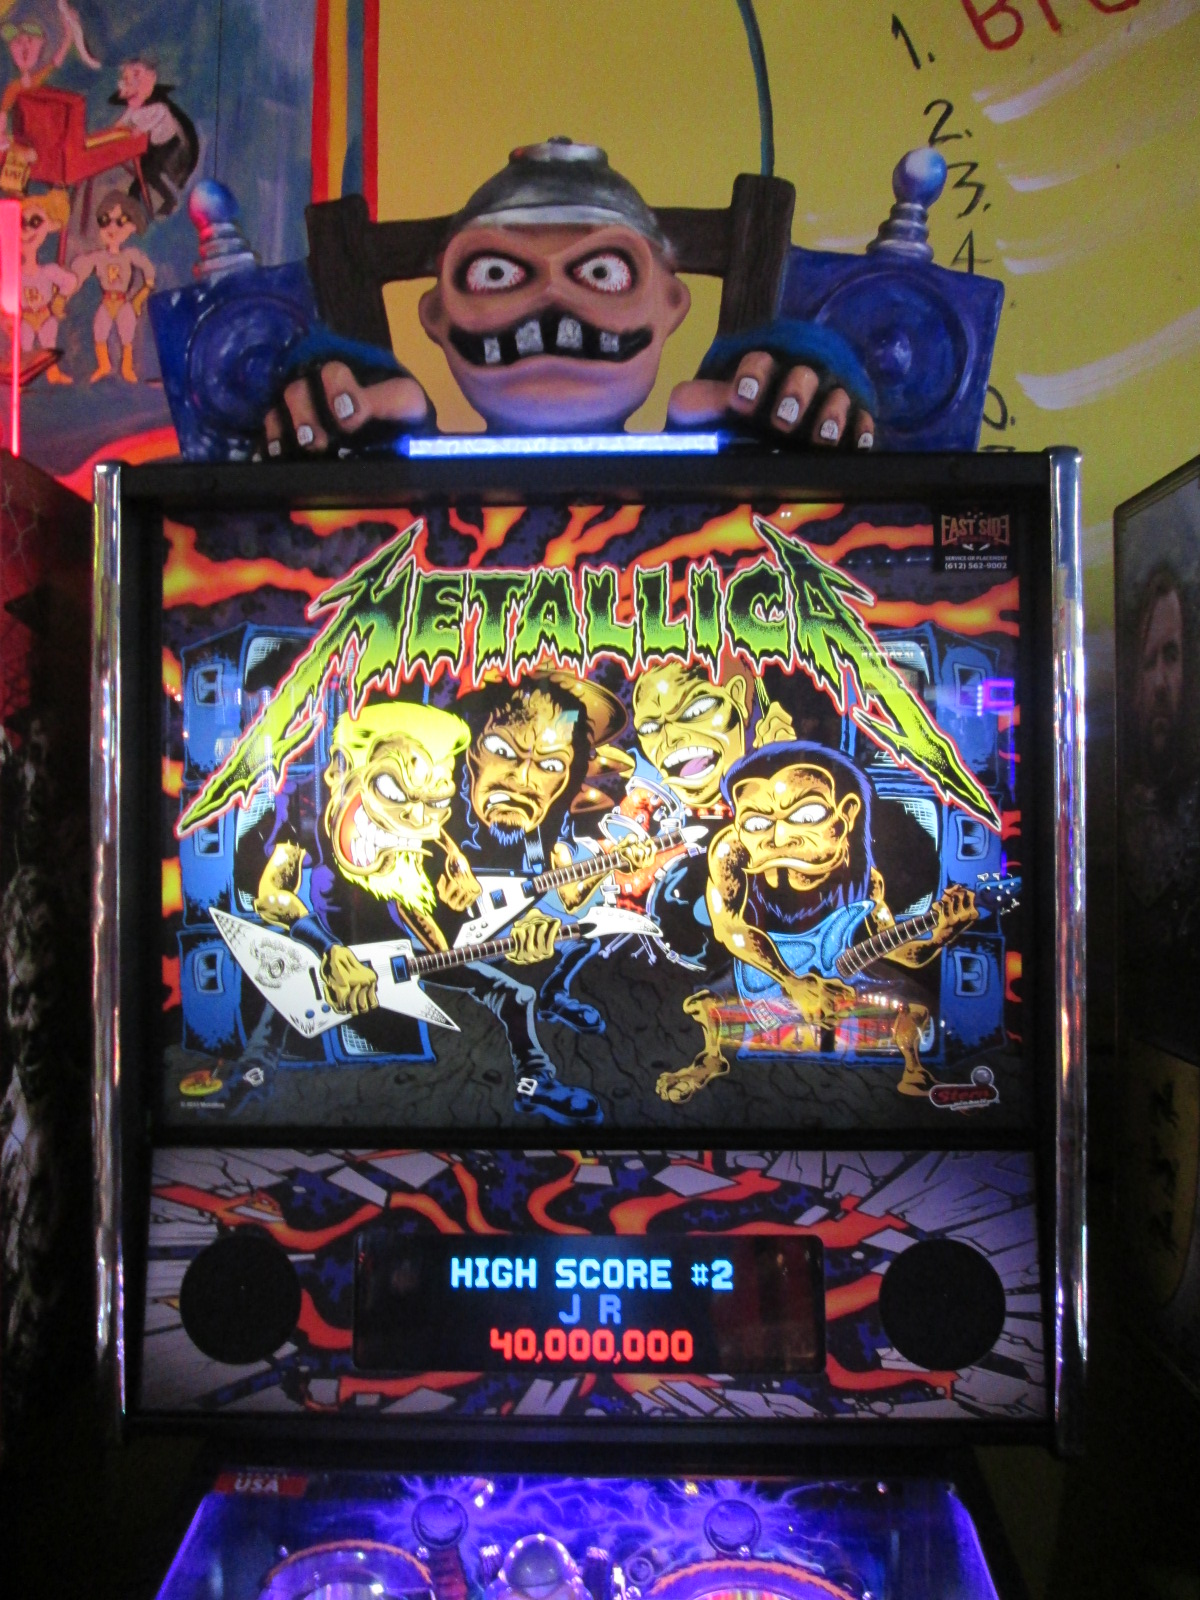 ed1475: Metallica (Pinball: 3 Balls) 5,118,560 points on 2016-08-25 19:09:09